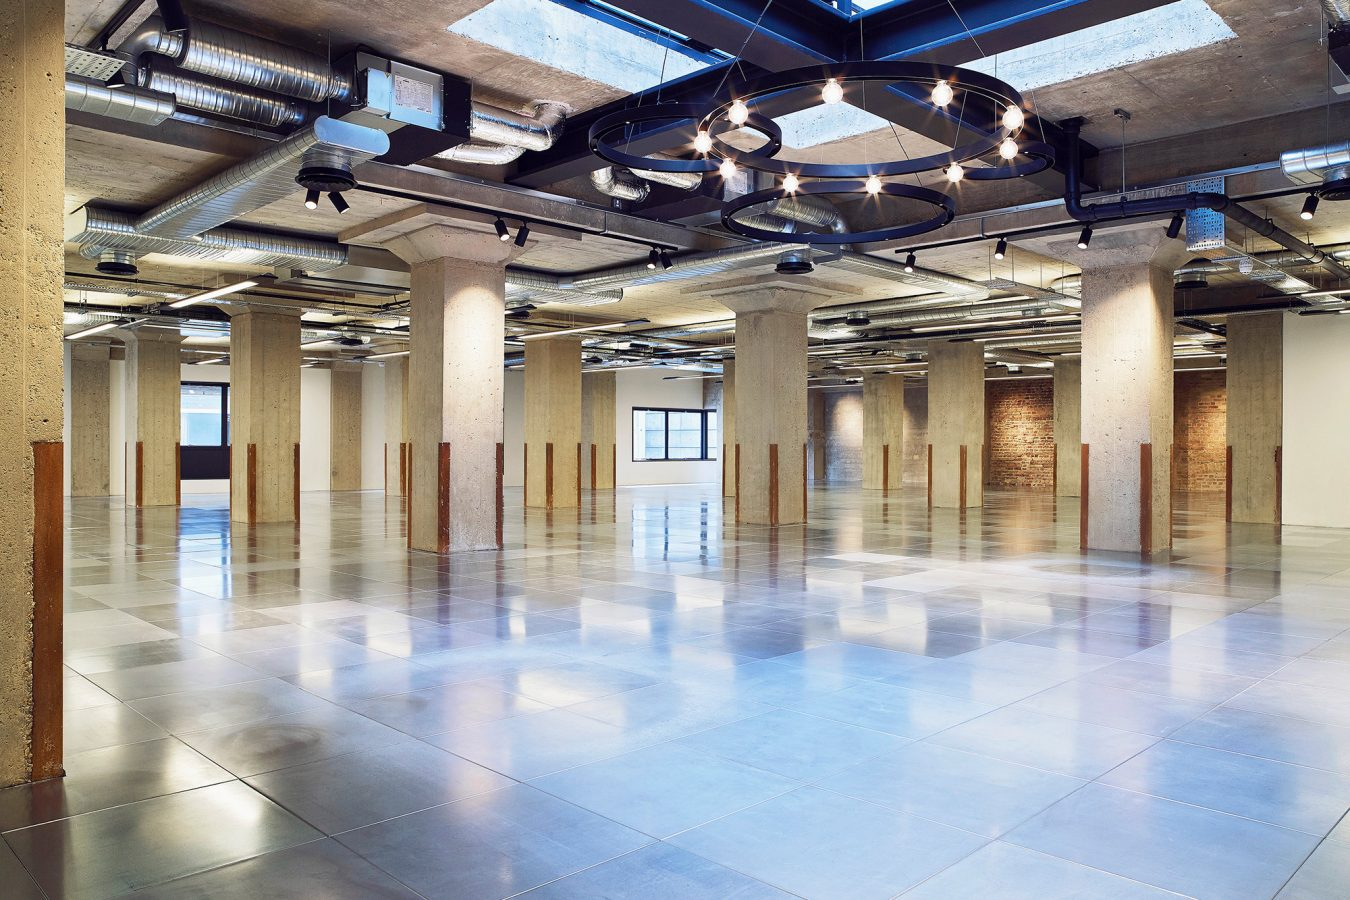 An office space redecorated with new flooring throughout industrial style lightning and exposed concrete pillions.